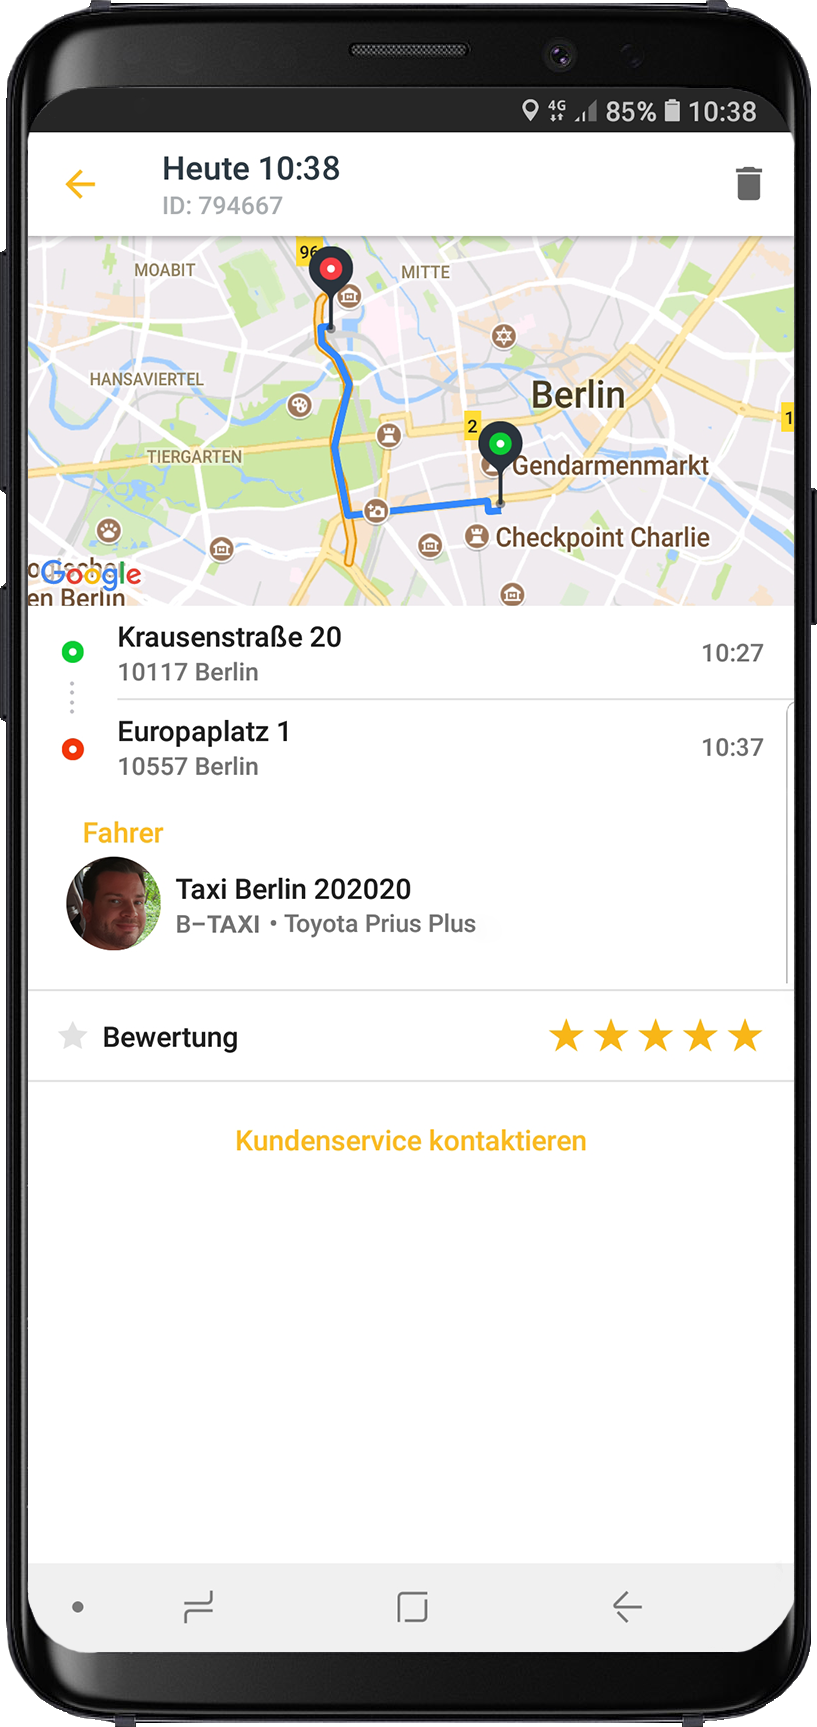 taxi eu - The taxi app for Europe